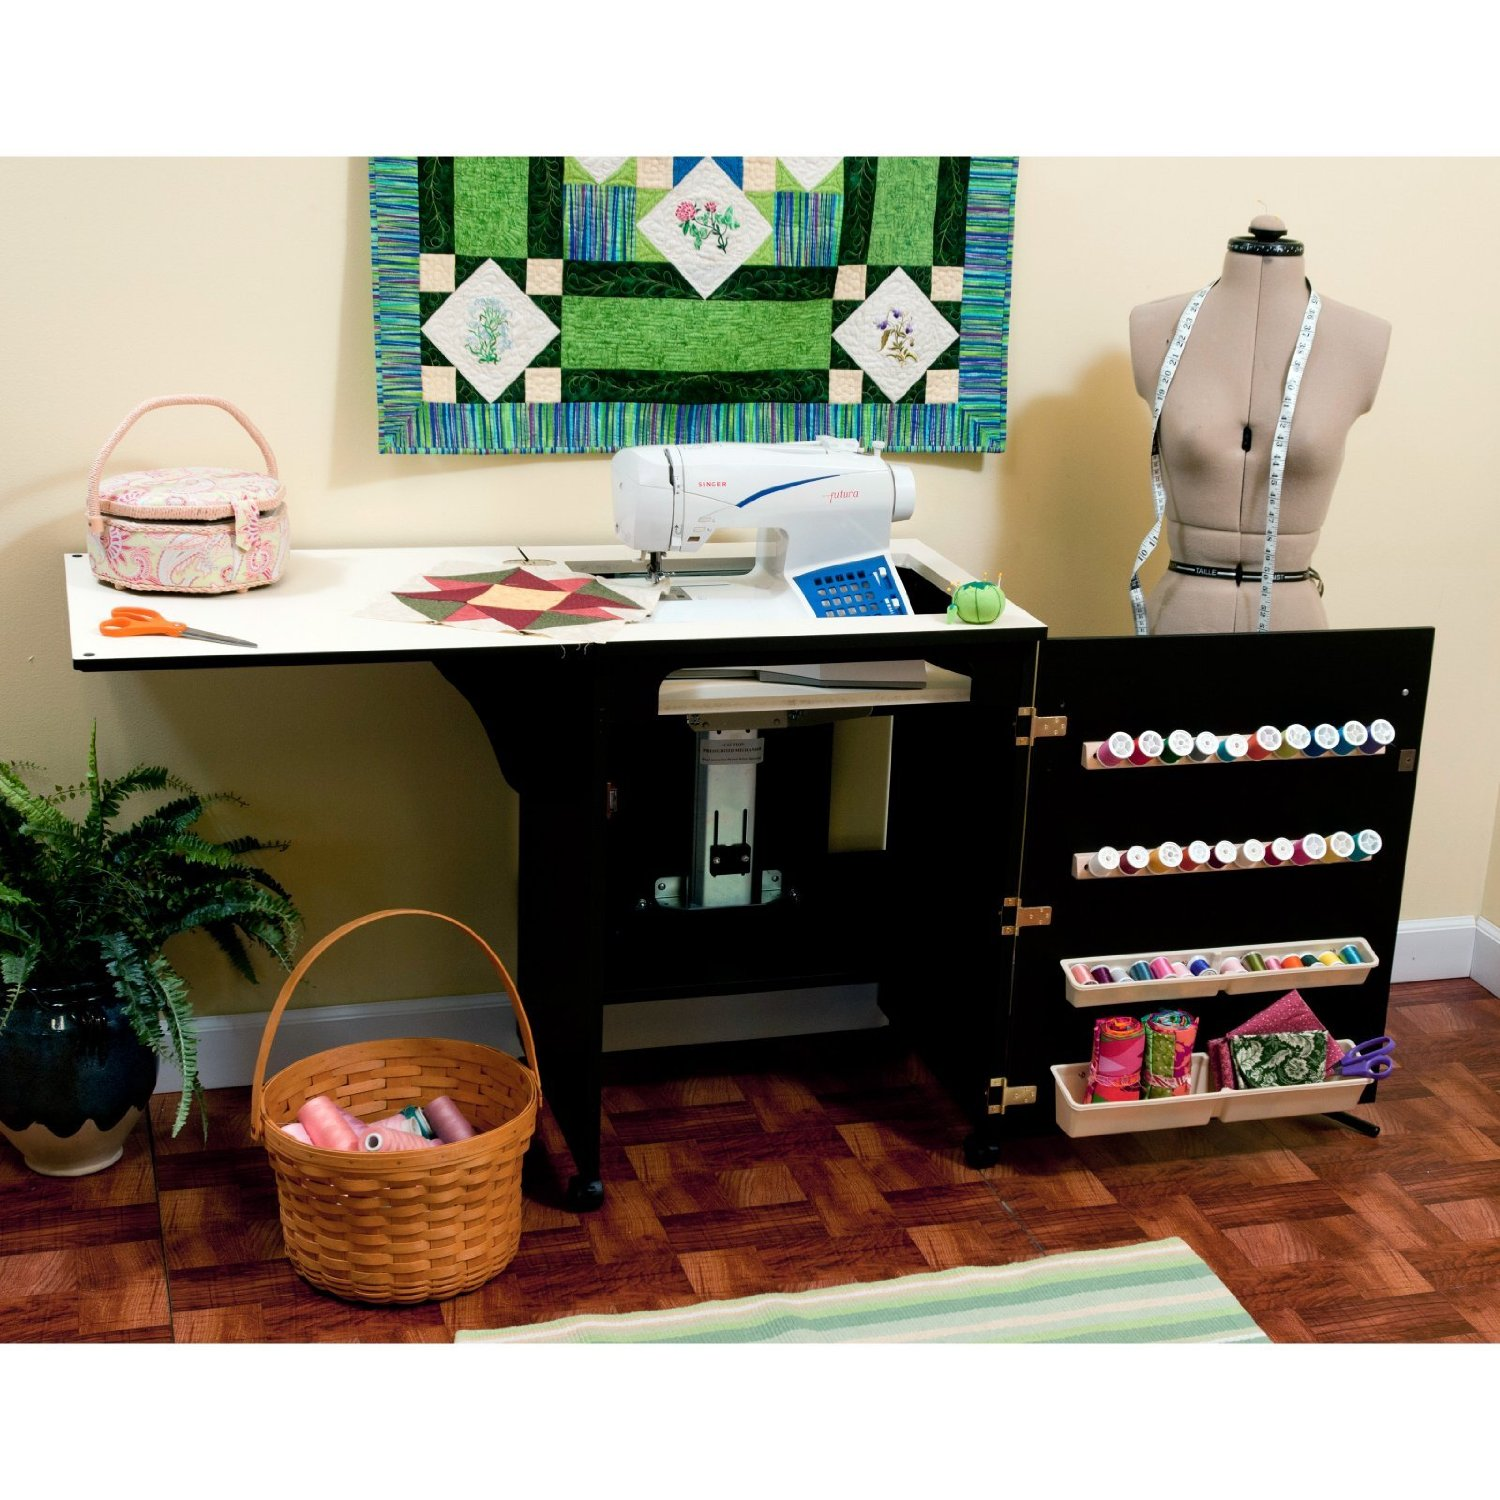 Sewing Cabinets Amp Tables Beginner Sewing Machines